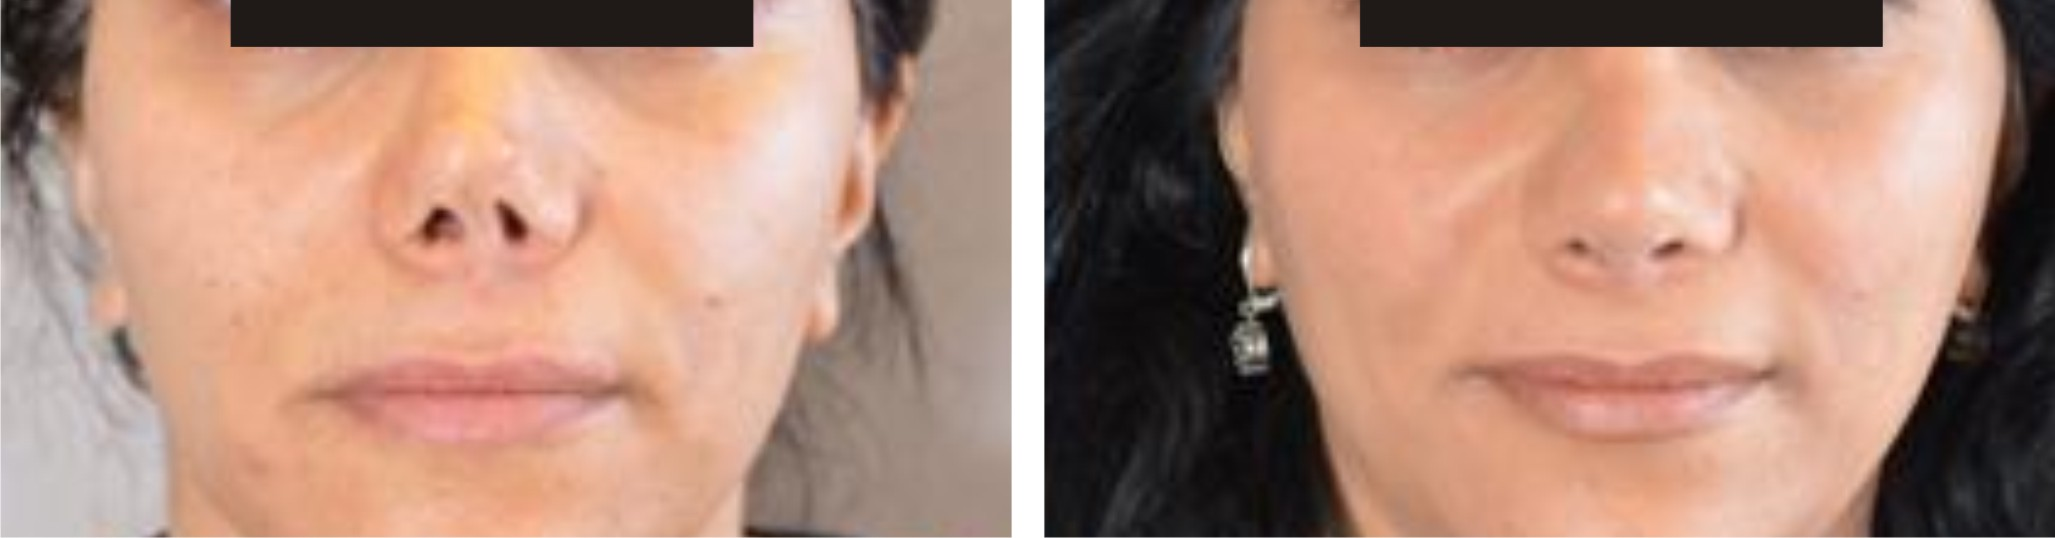 Nose Reshaping Image Two